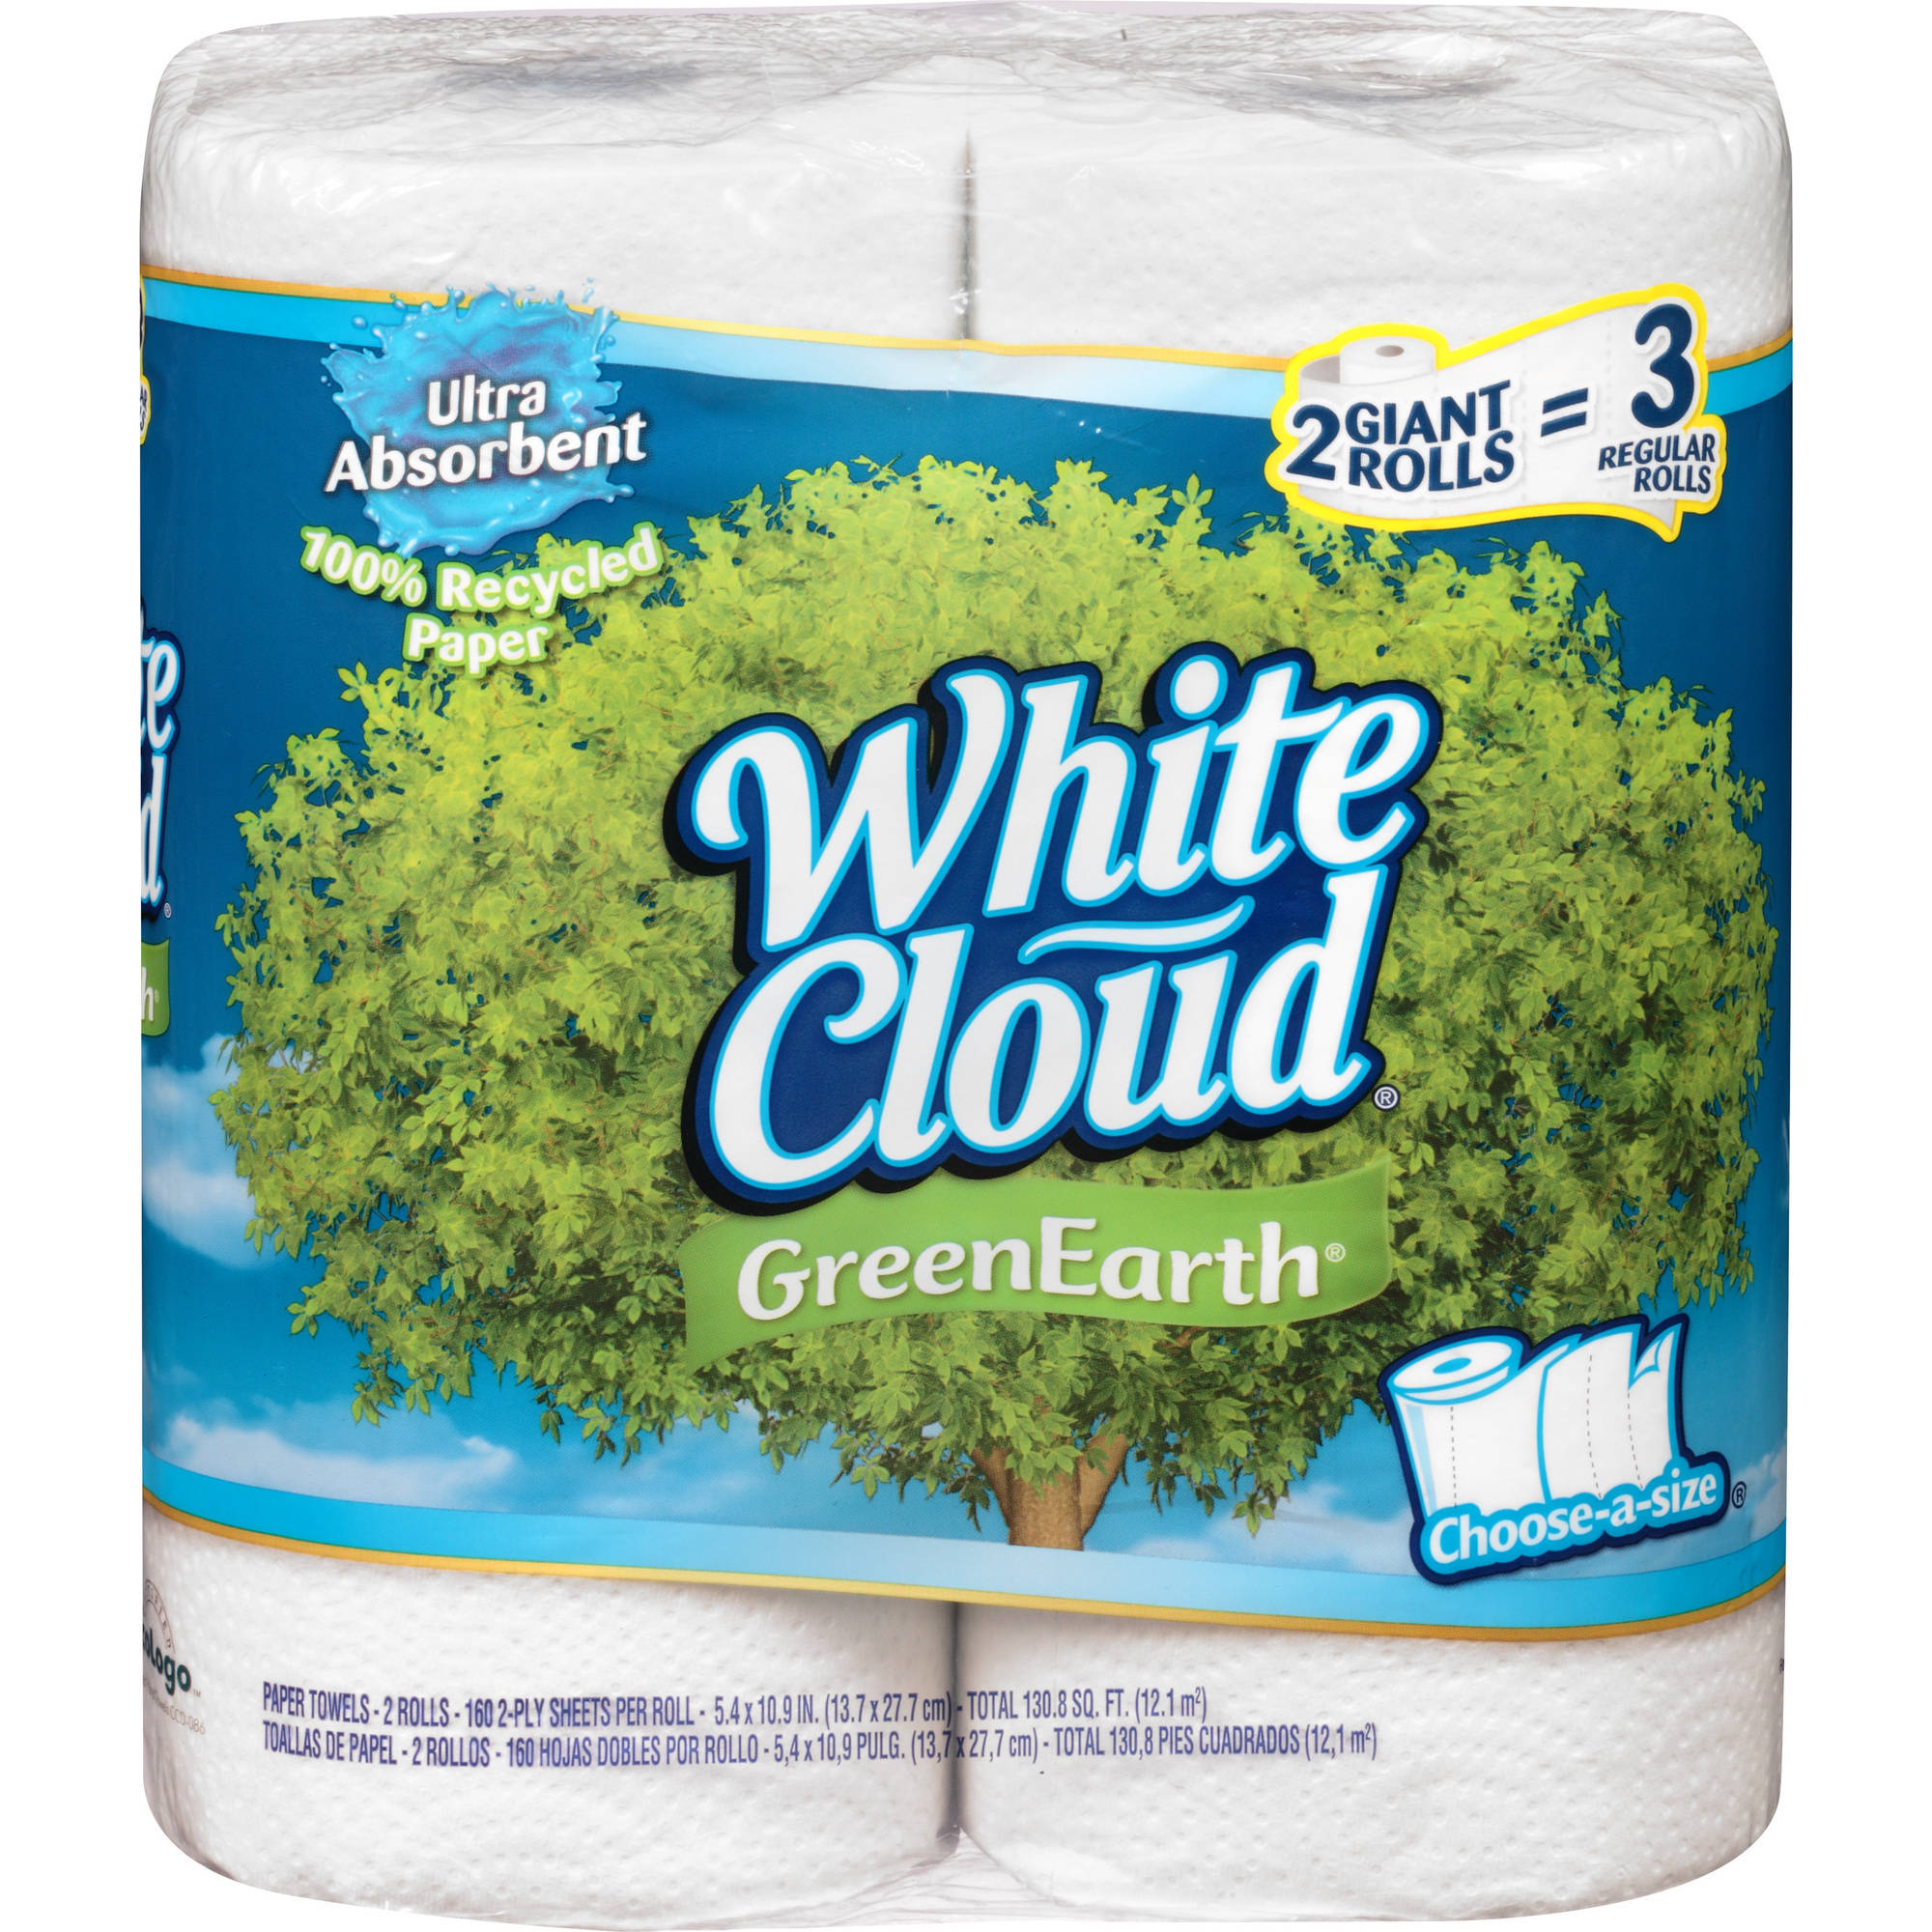 White Cloud GreenEarth Recycled Paper Towels, 2-Pack, 160 Sheets Each